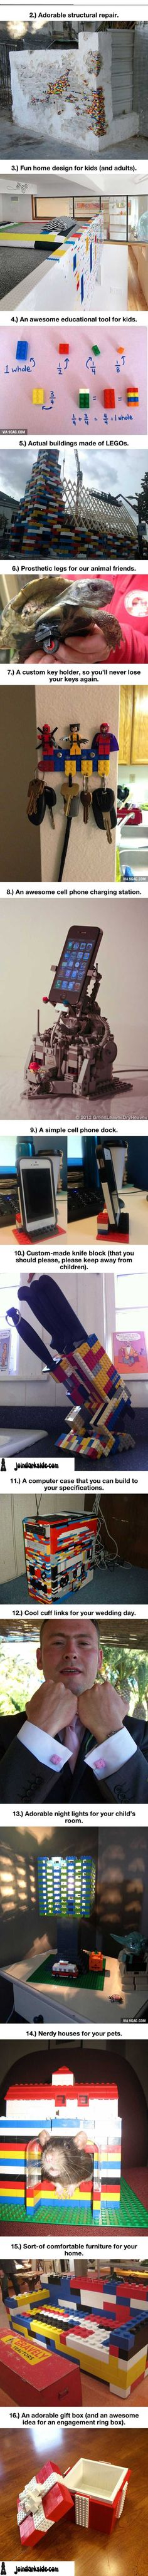 joindarkside » 16 Awesome Uses For LEGO You Never Thought Of